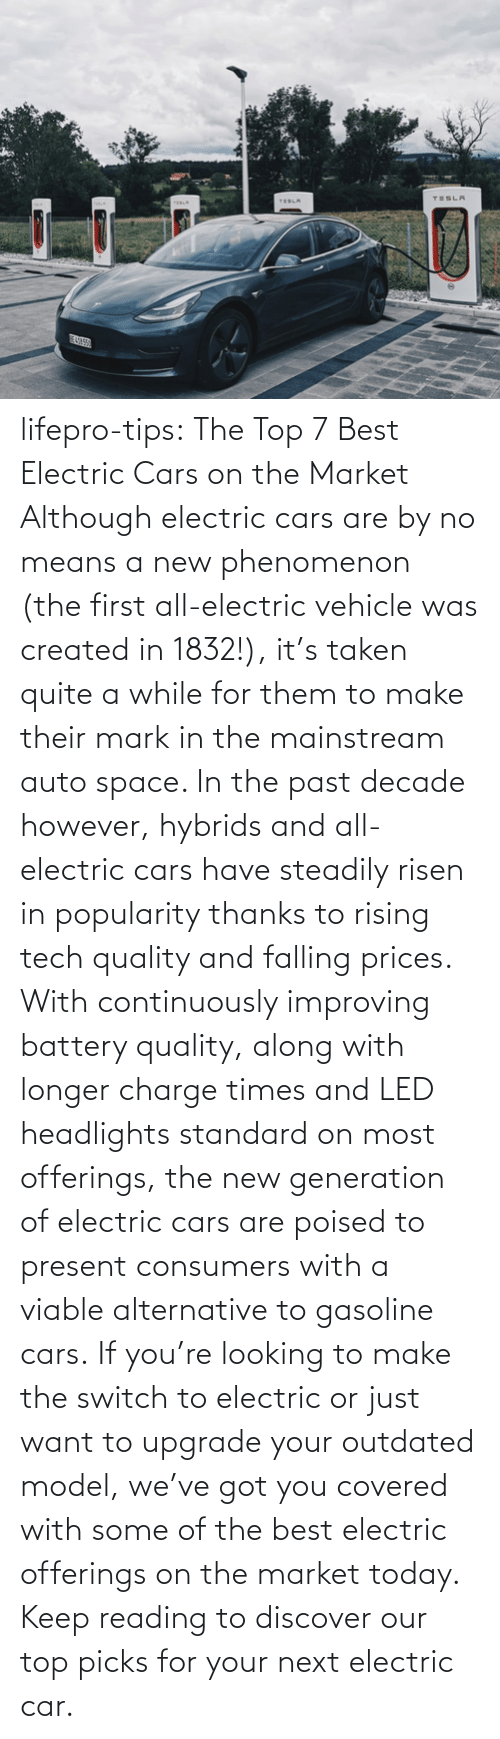 Timeline: lifepro-tips: The Top 7 Best Electric Cars on the Market   Although electric cars are by no means a new phenomenon (the first all-electric vehicle was created in 1832!), it's taken quite a while for them to make their mark in the mainstream auto space. In the past decade however, hybrids and all-electric cars have steadily risen in popularity thanks to rising tech quality and falling prices. With continuously improving battery quality, along with longer charge times and LED headlights standard on most offerings, the new generation of electric cars are poised to present consumers with a viable alternative to gasoline cars. If you're looking to make the switch to electric or just want to upgrade your outdated model, we've got you covered with some of the best electric offerings on the market today. Keep reading to discover our top picks for your next electric car.